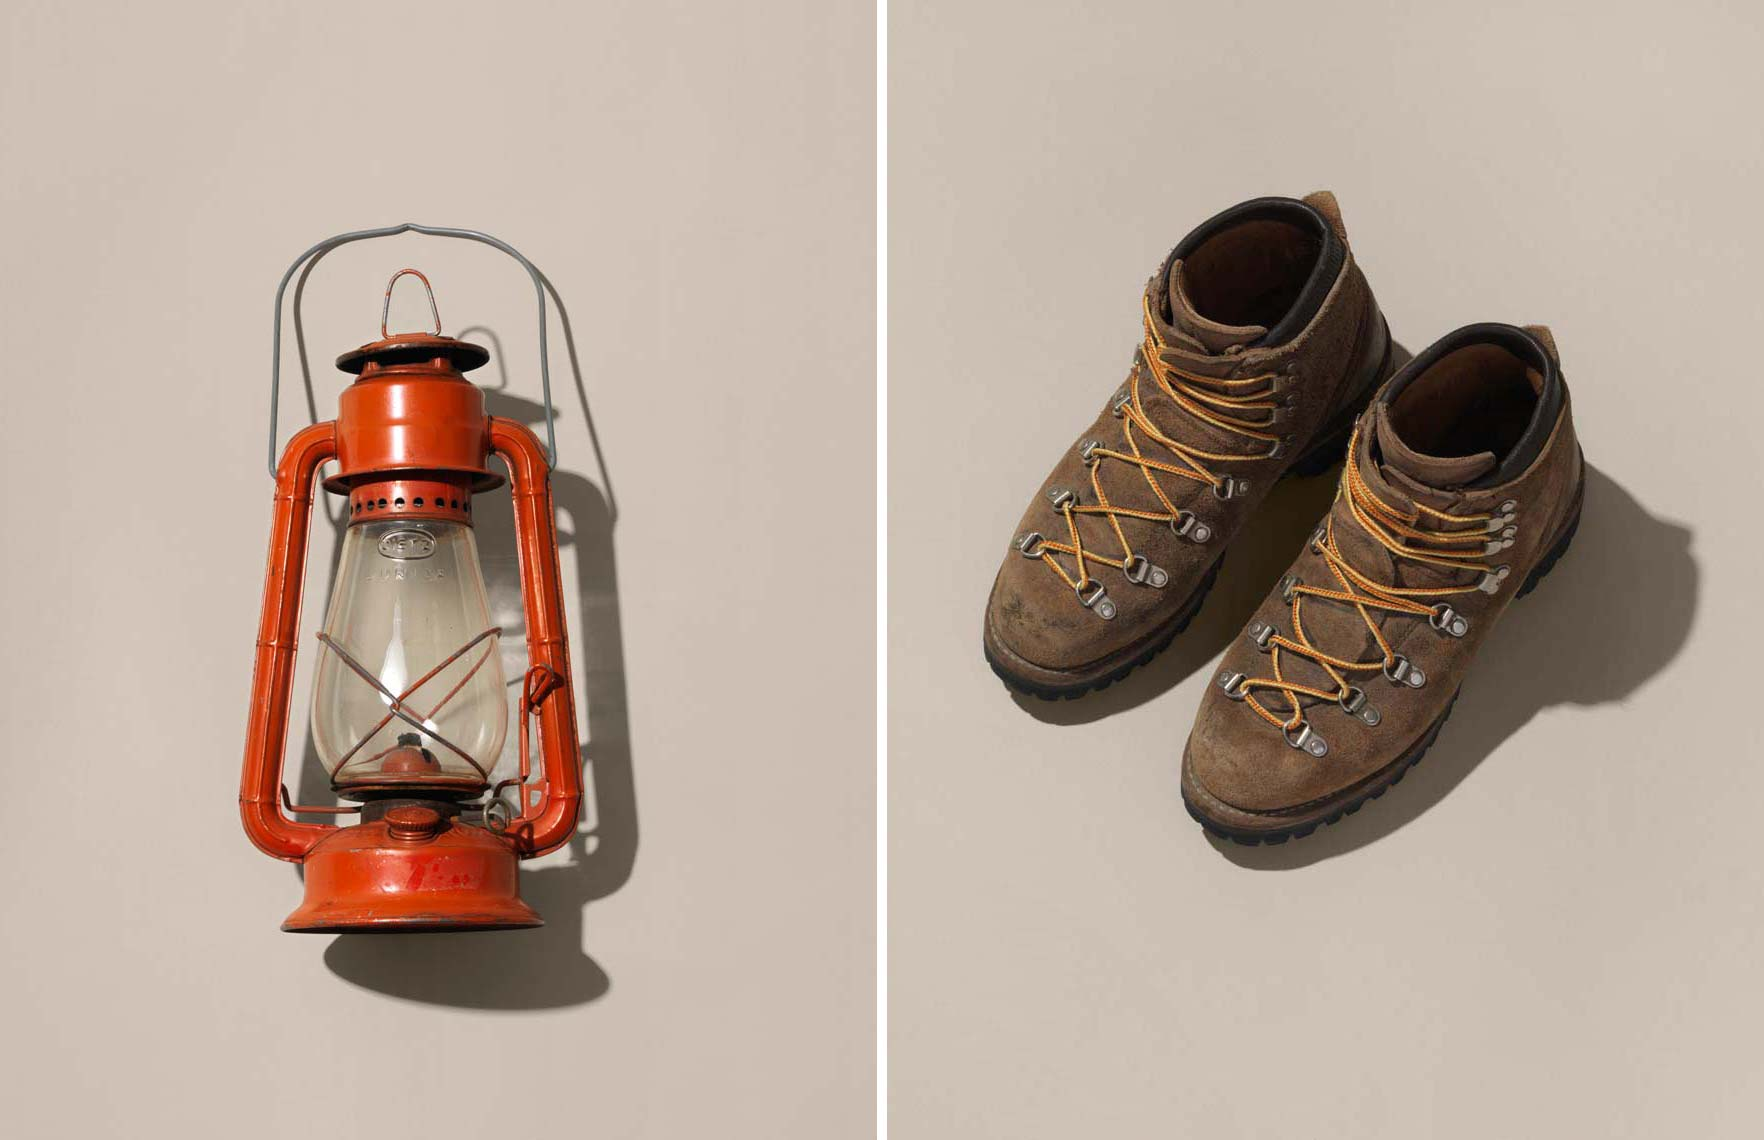 old lantern and a worn pair of hiking boots